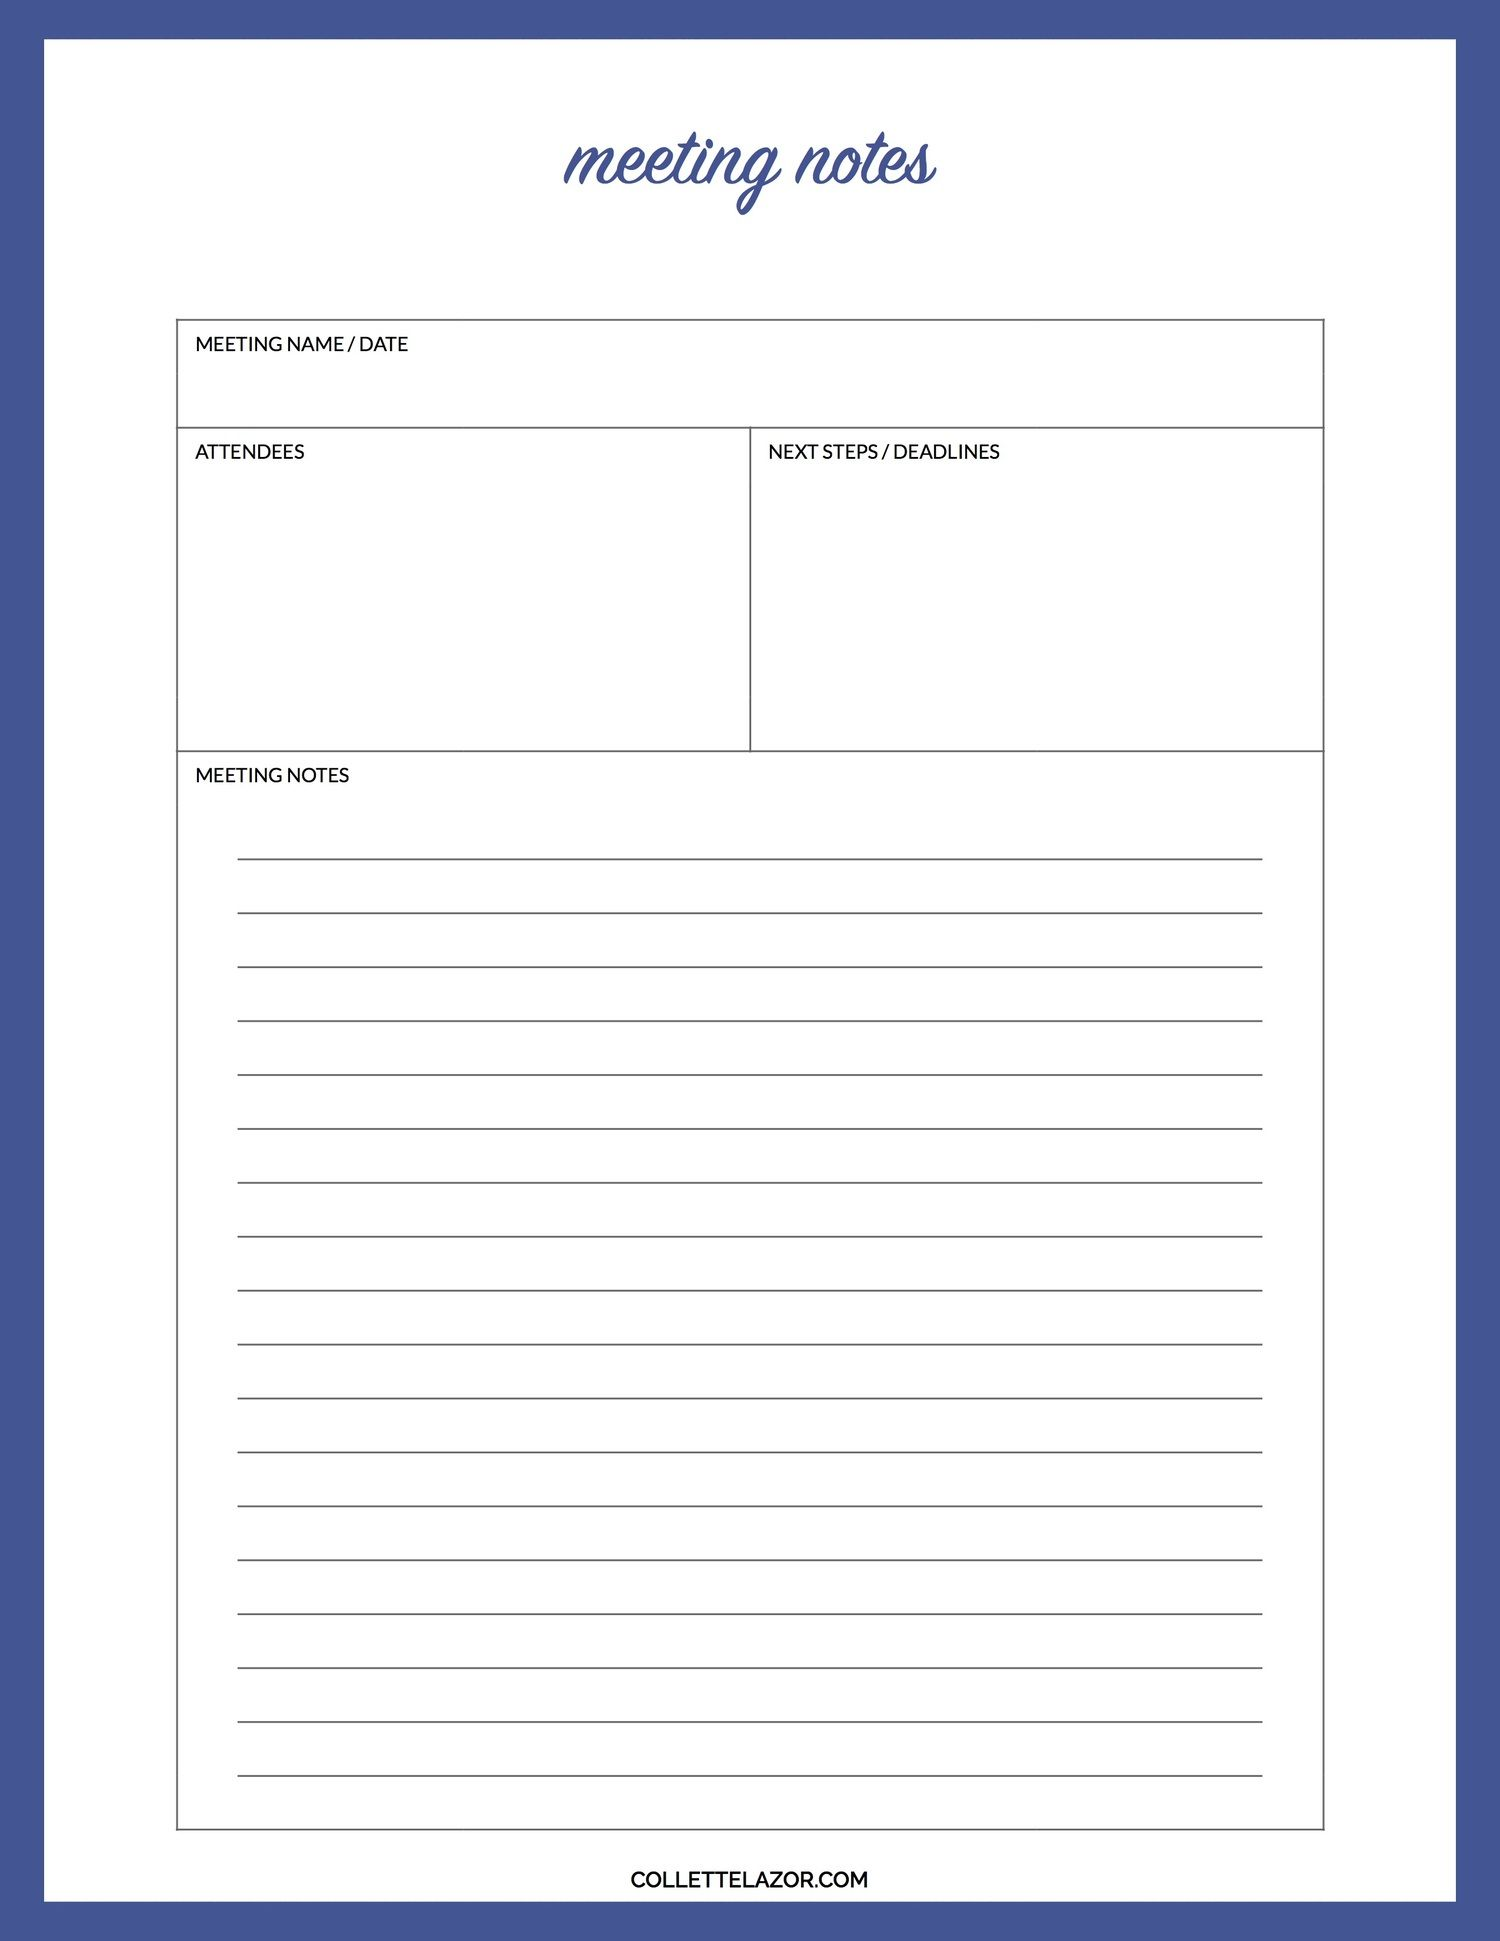 Meeting Notes Printable Made With Love By Collettelazor Meeting Notes Printable Meeting Notes Template Meeting Notes Google docs note taking template